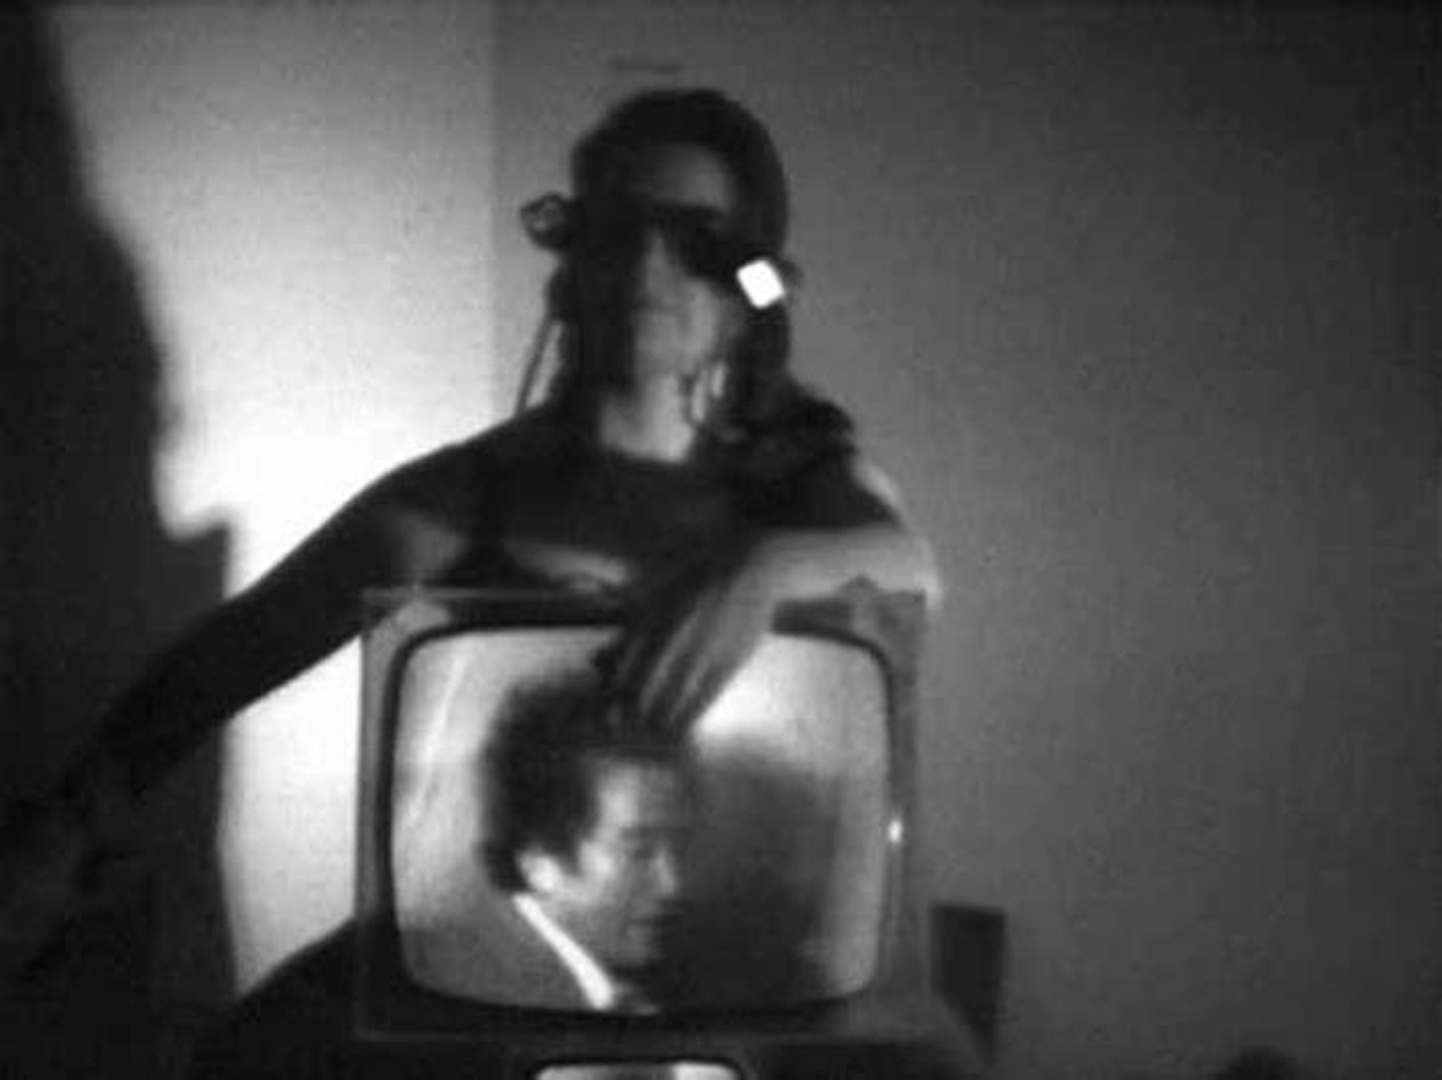 ©, Jud Yalkut, Nam June Paik: Video Synthesizer and TV Cello Collectibles